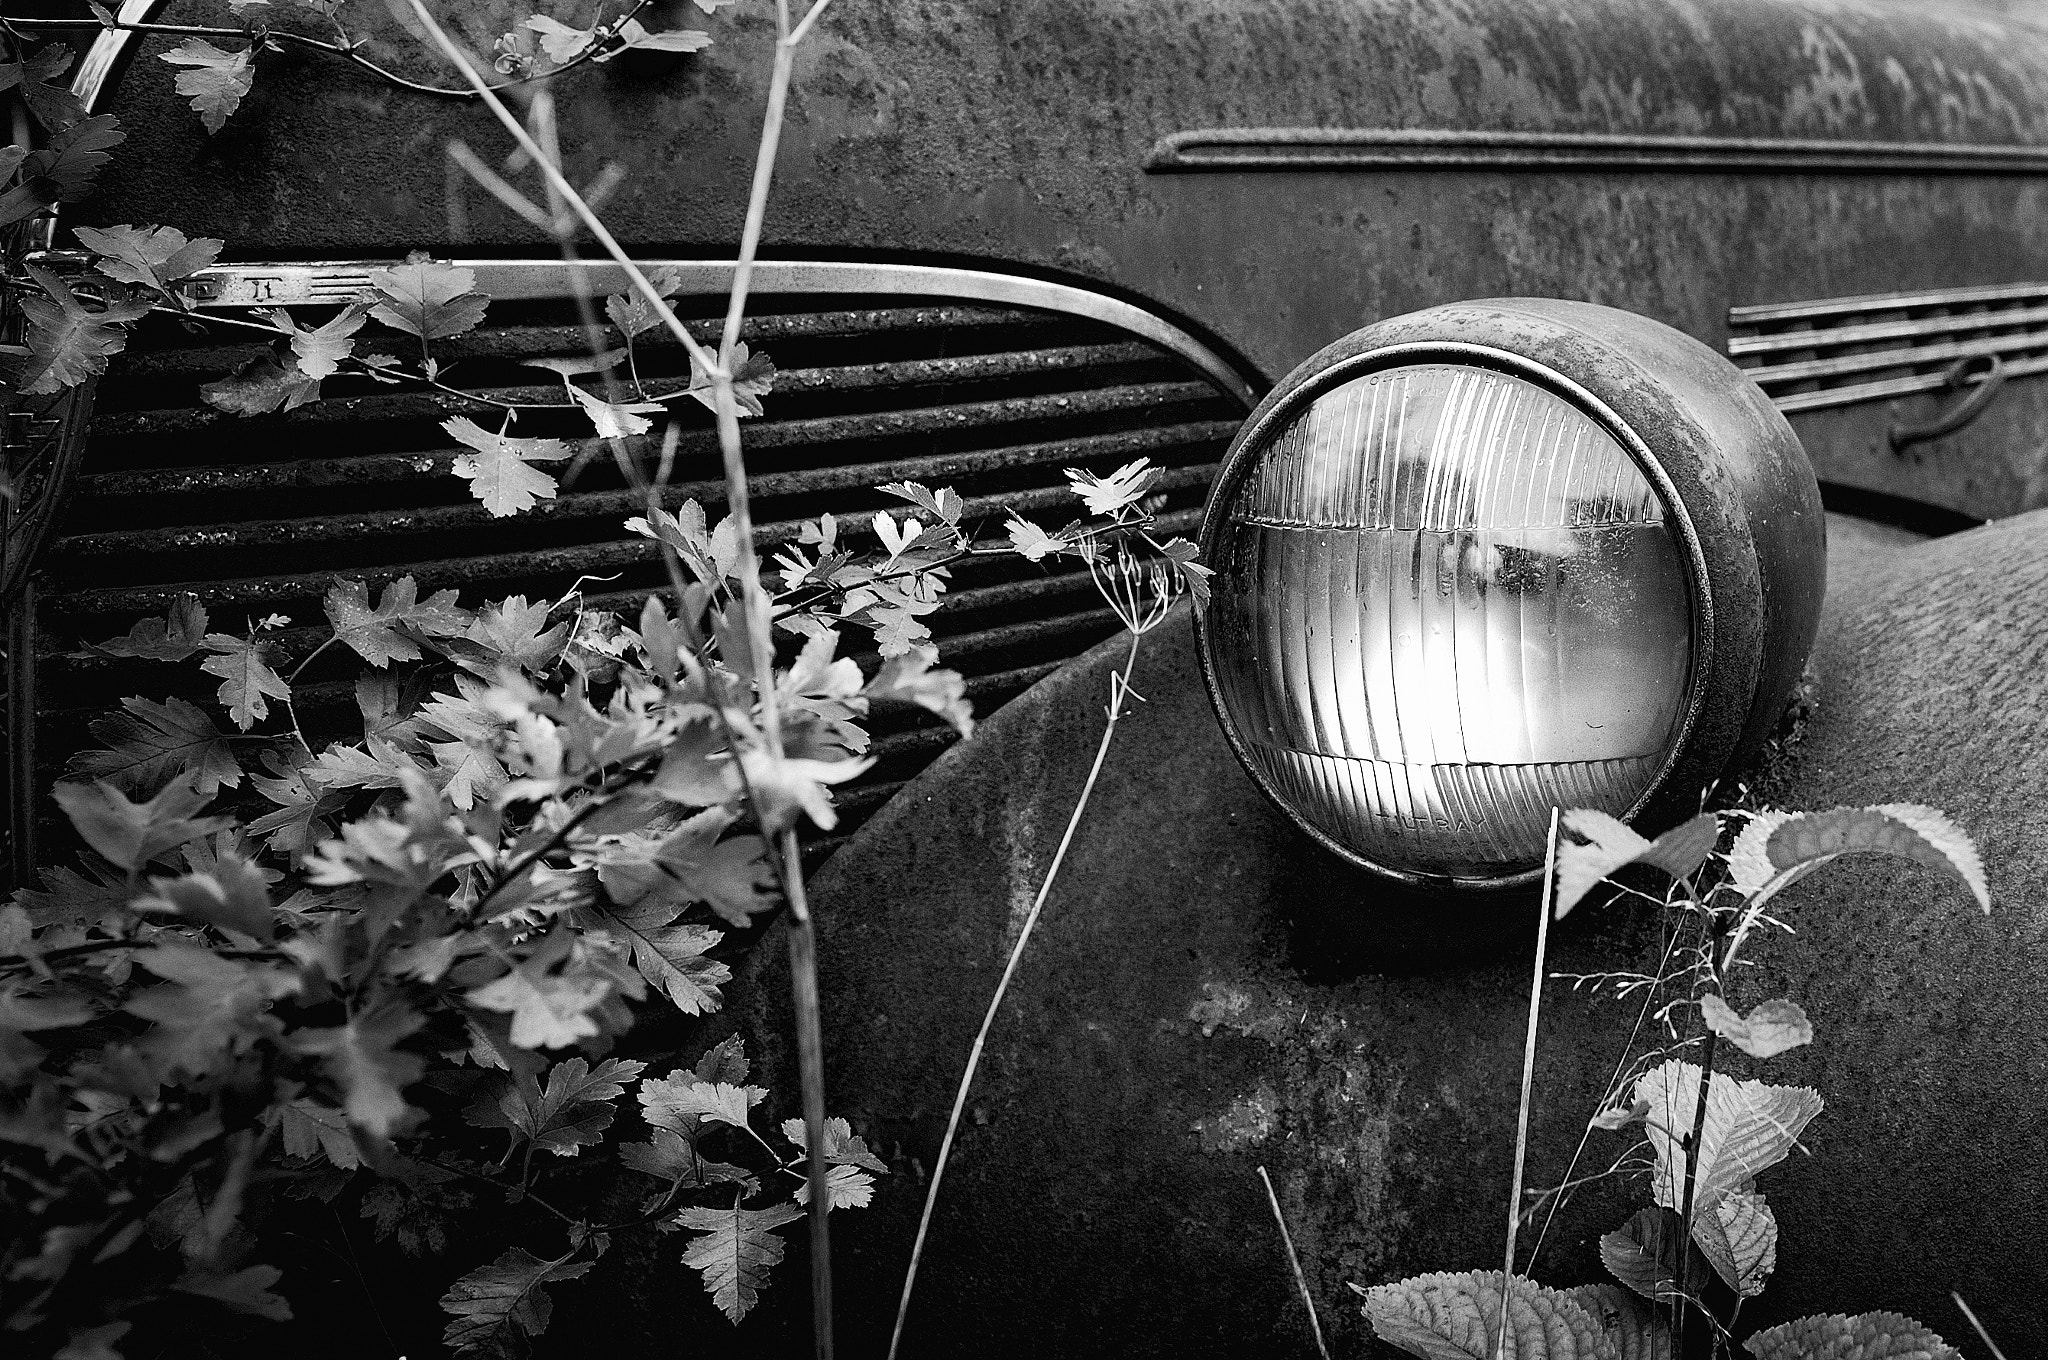 Photograph Old Car by Renè Skaaning Nørager on 500px